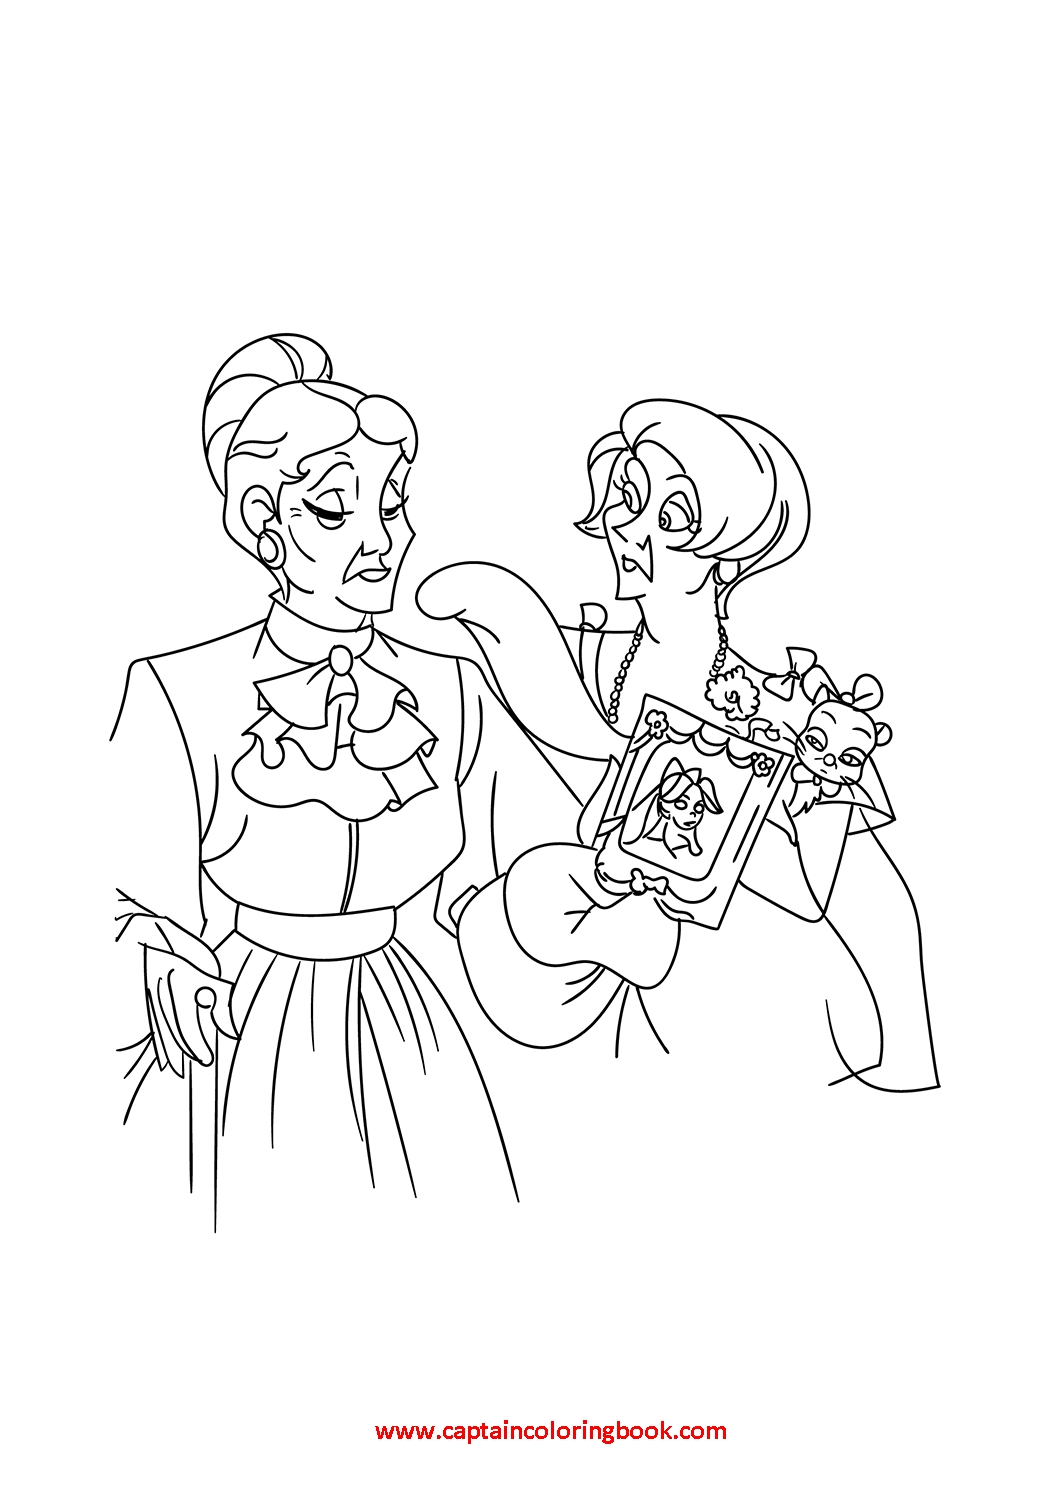 Disney Princess Anastasia Coloring Pages - Coloring Page